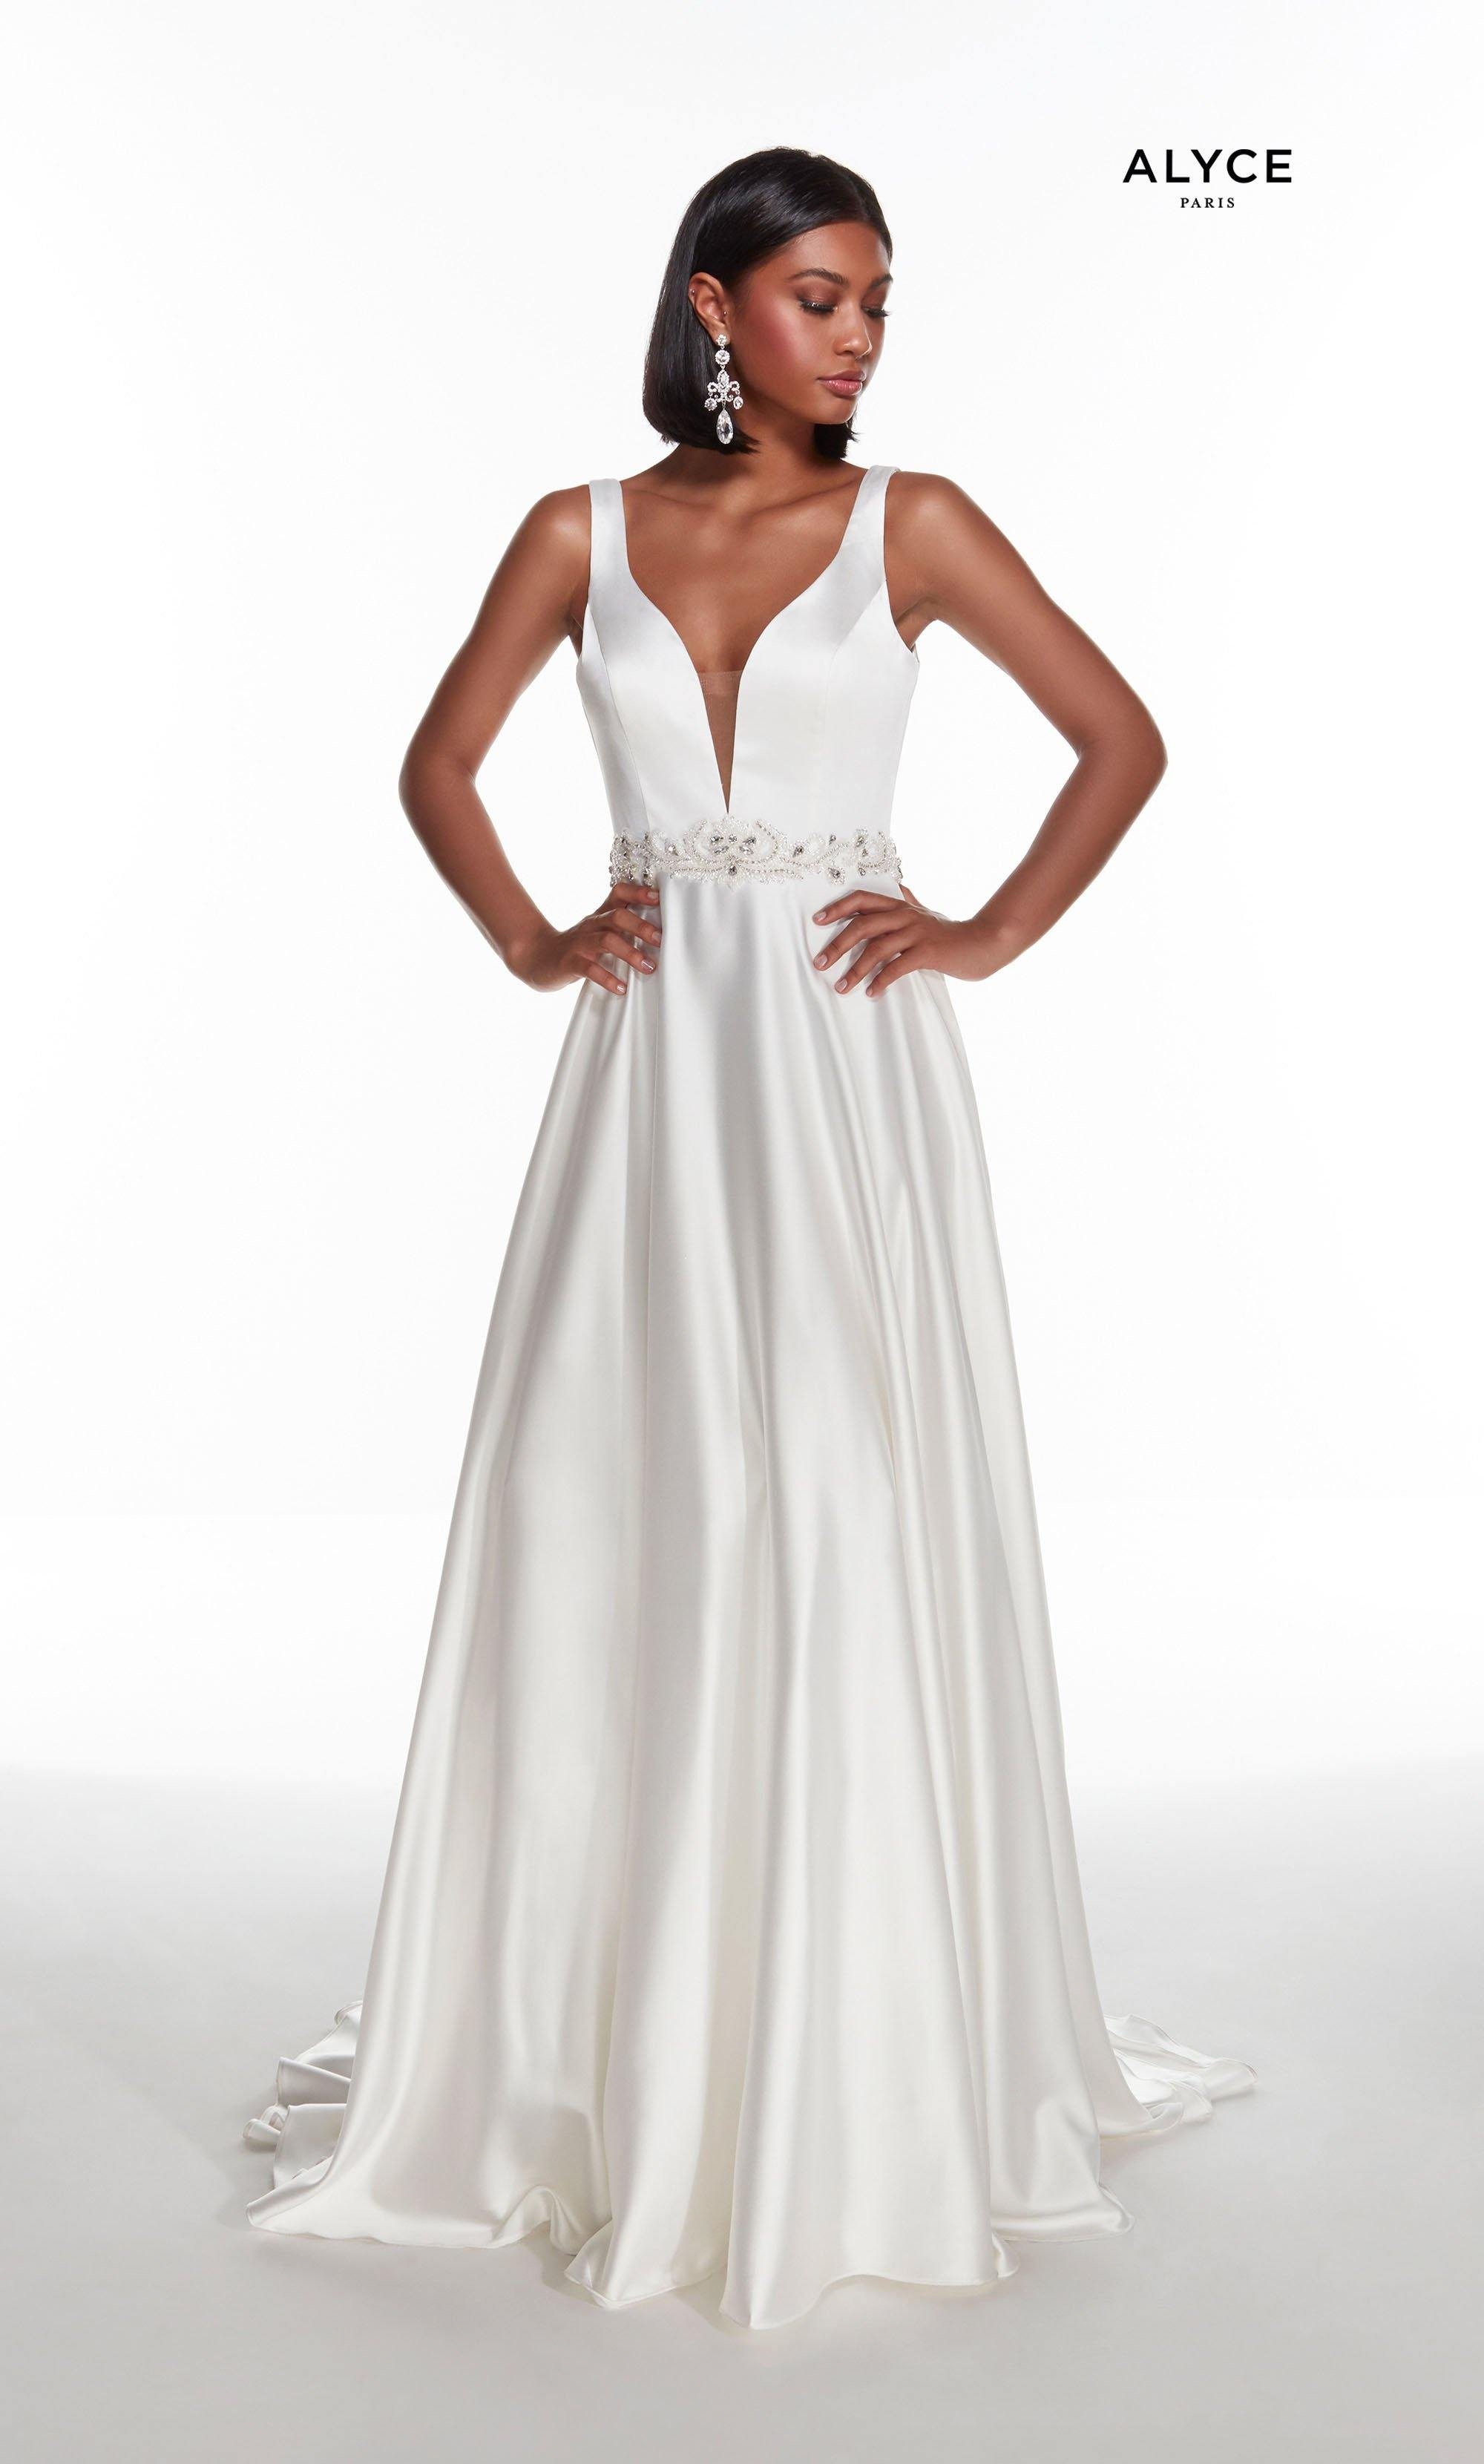 Diamond White luminous satin informal bridal dress with a plunging neckline and beaded natural waistline